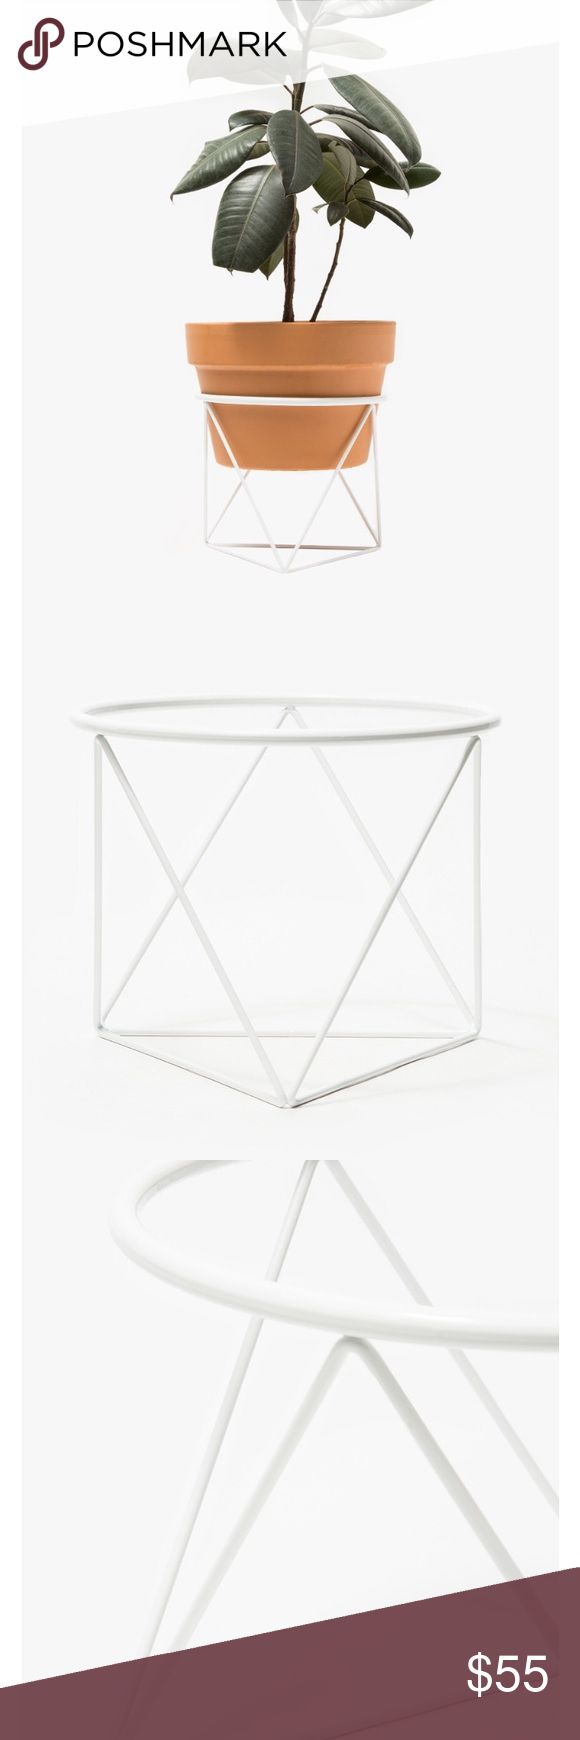 Octahedron Ring Planter Short Short plant stand in White spray. Powder coated steel. Opening fits standard 10-inch terra cotta pot. Designed for indoor/outdoor use. Anthropologie Accessories